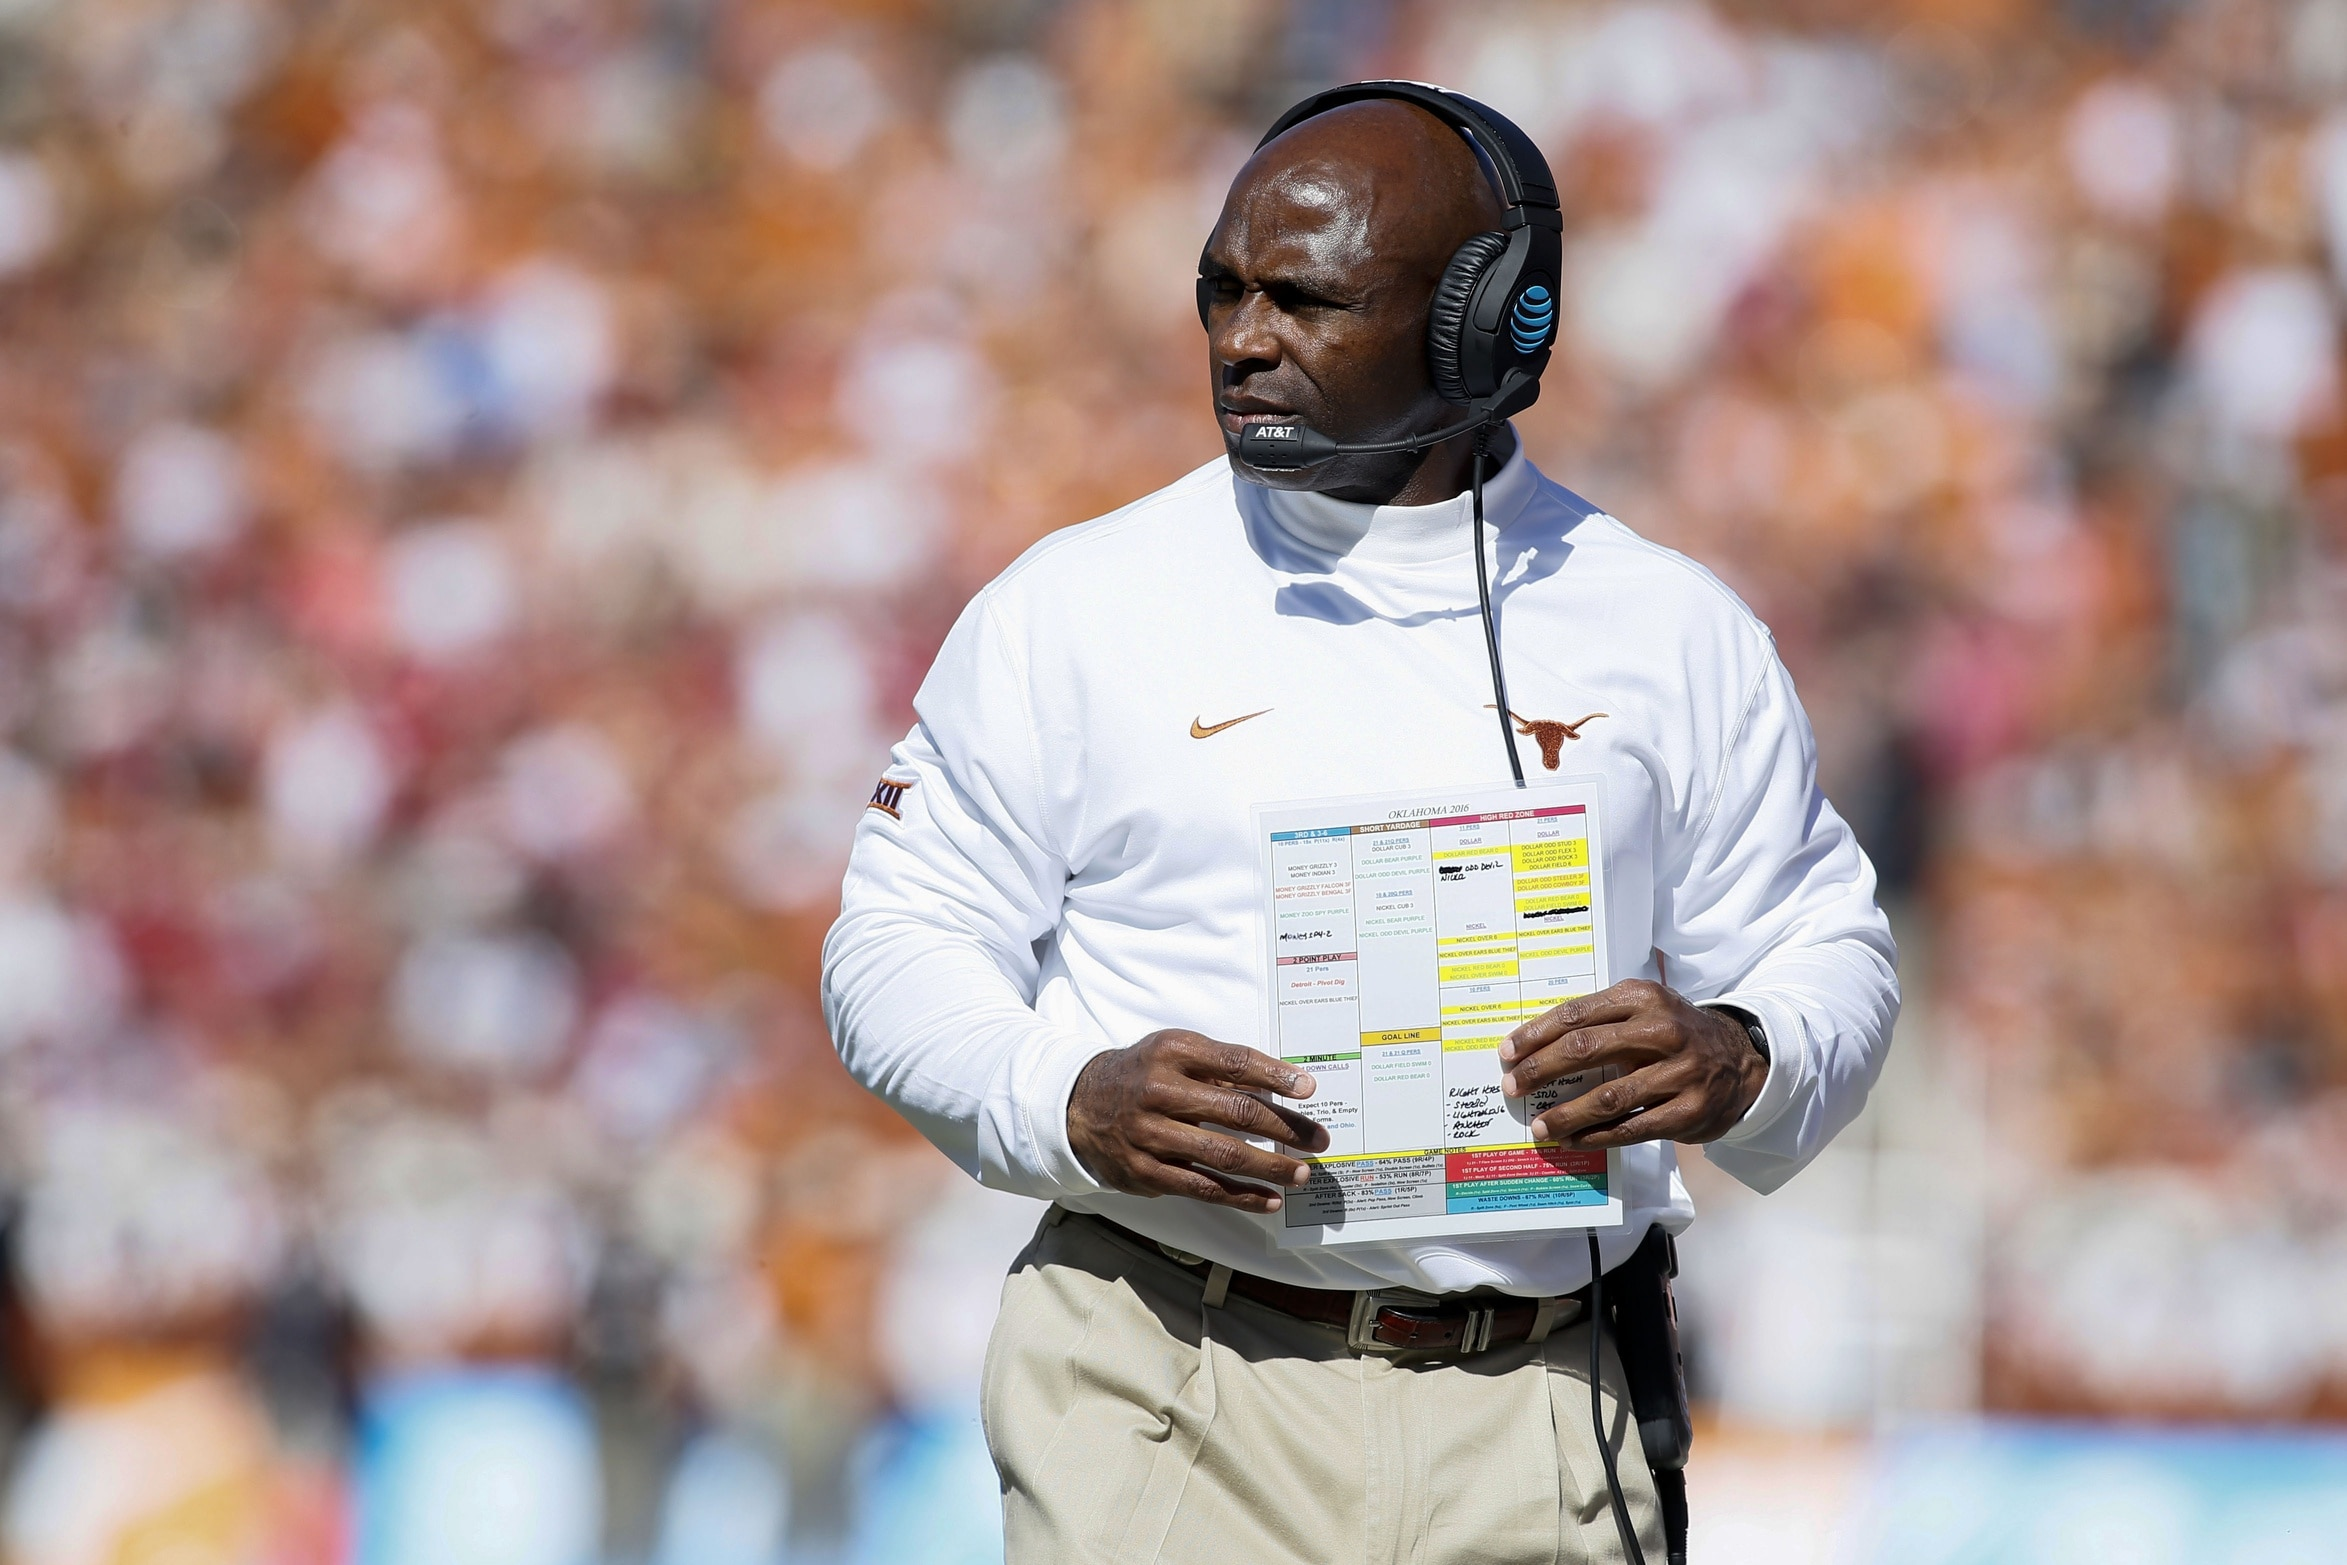 College Football Week 6, Charlie Strong